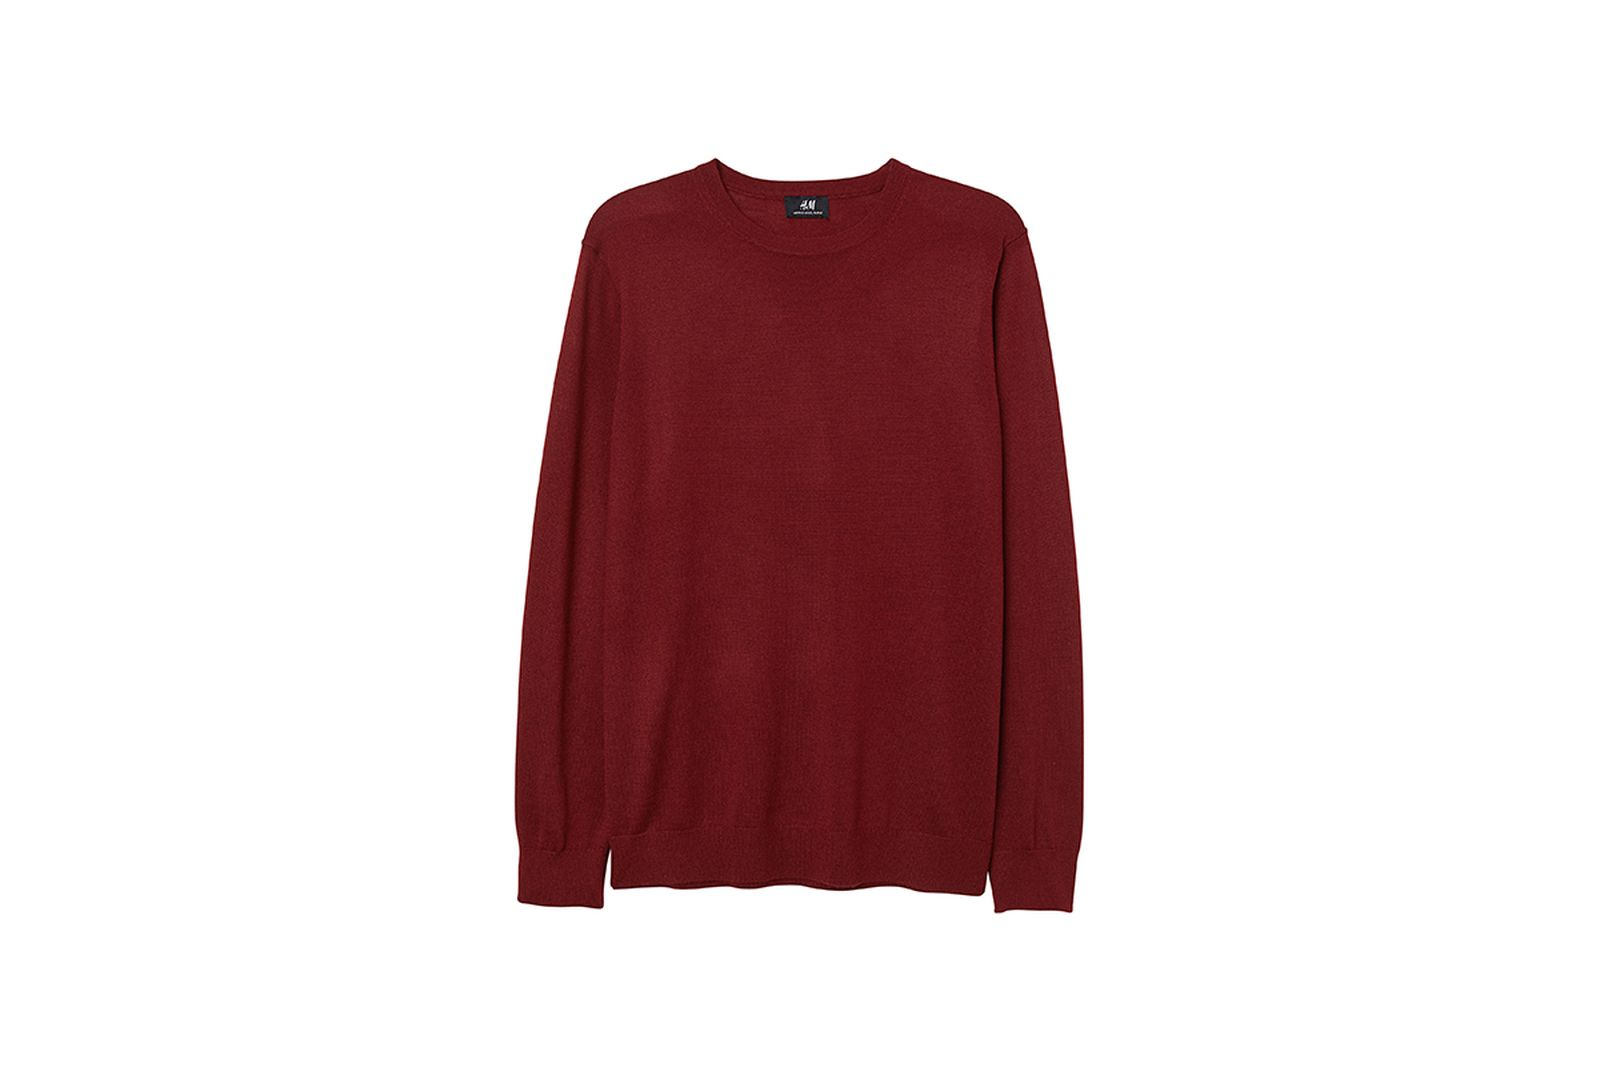 H&M Knit Merino Blend Sweater Gift Guide holiday